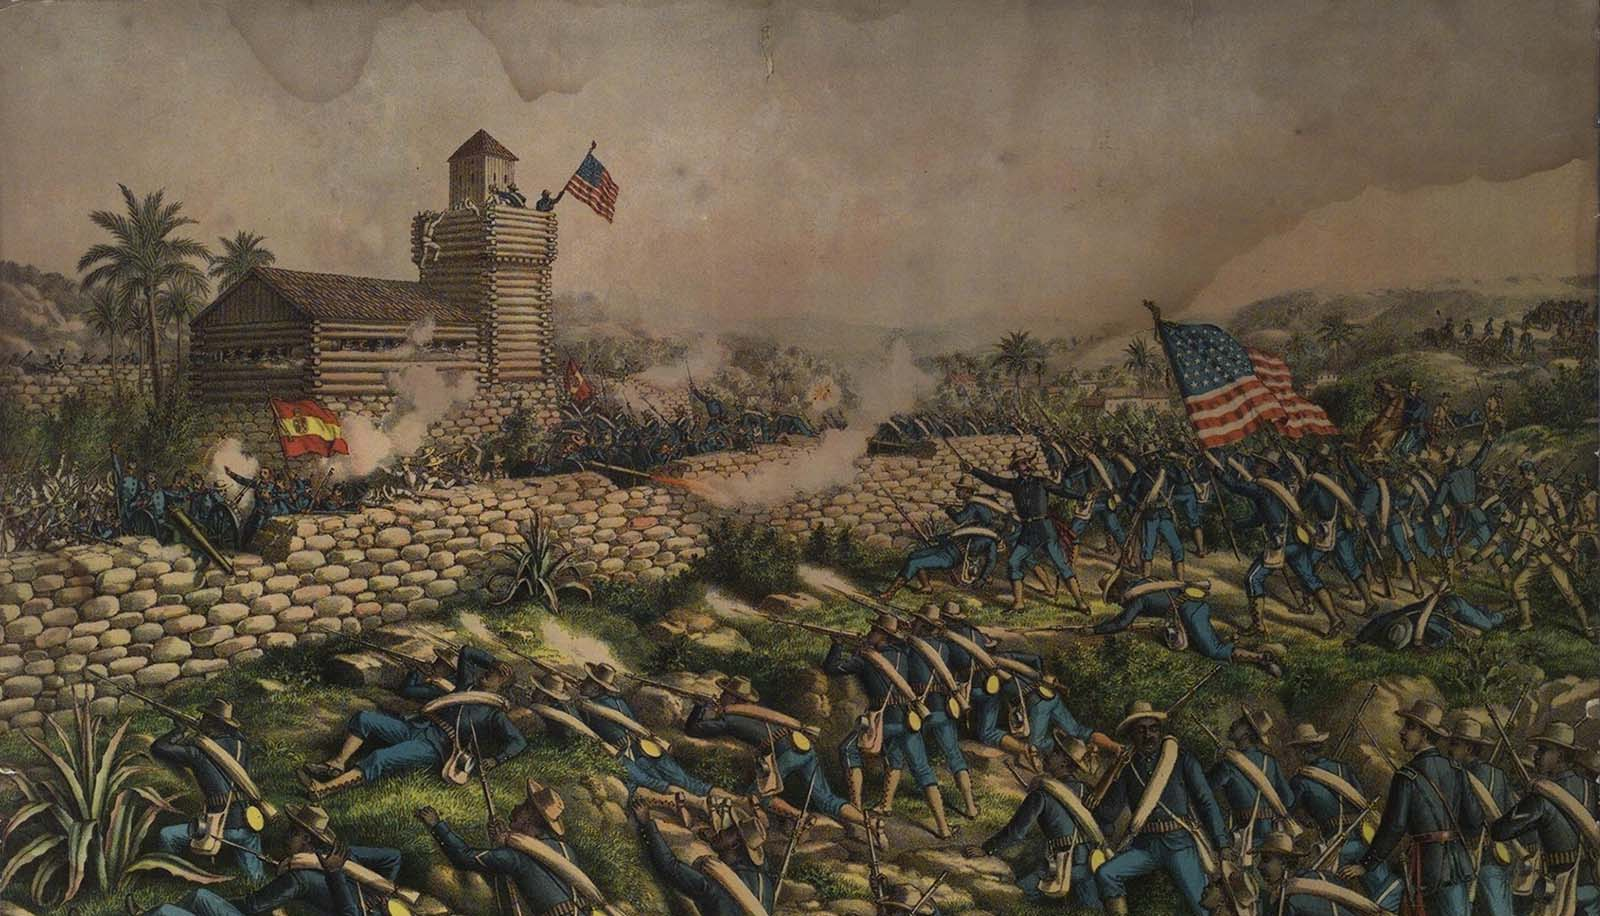 """Lithograph, 1899: """"Charge of the 24th and 25th Colored Infantry and Rescue of Rough Riders at San Juan Hill,"""" July 2, 1898. Copyrighted 1899 by Kunz & Allison, 267-269 Wabash Ave., Chicago. 1.69.5750"""